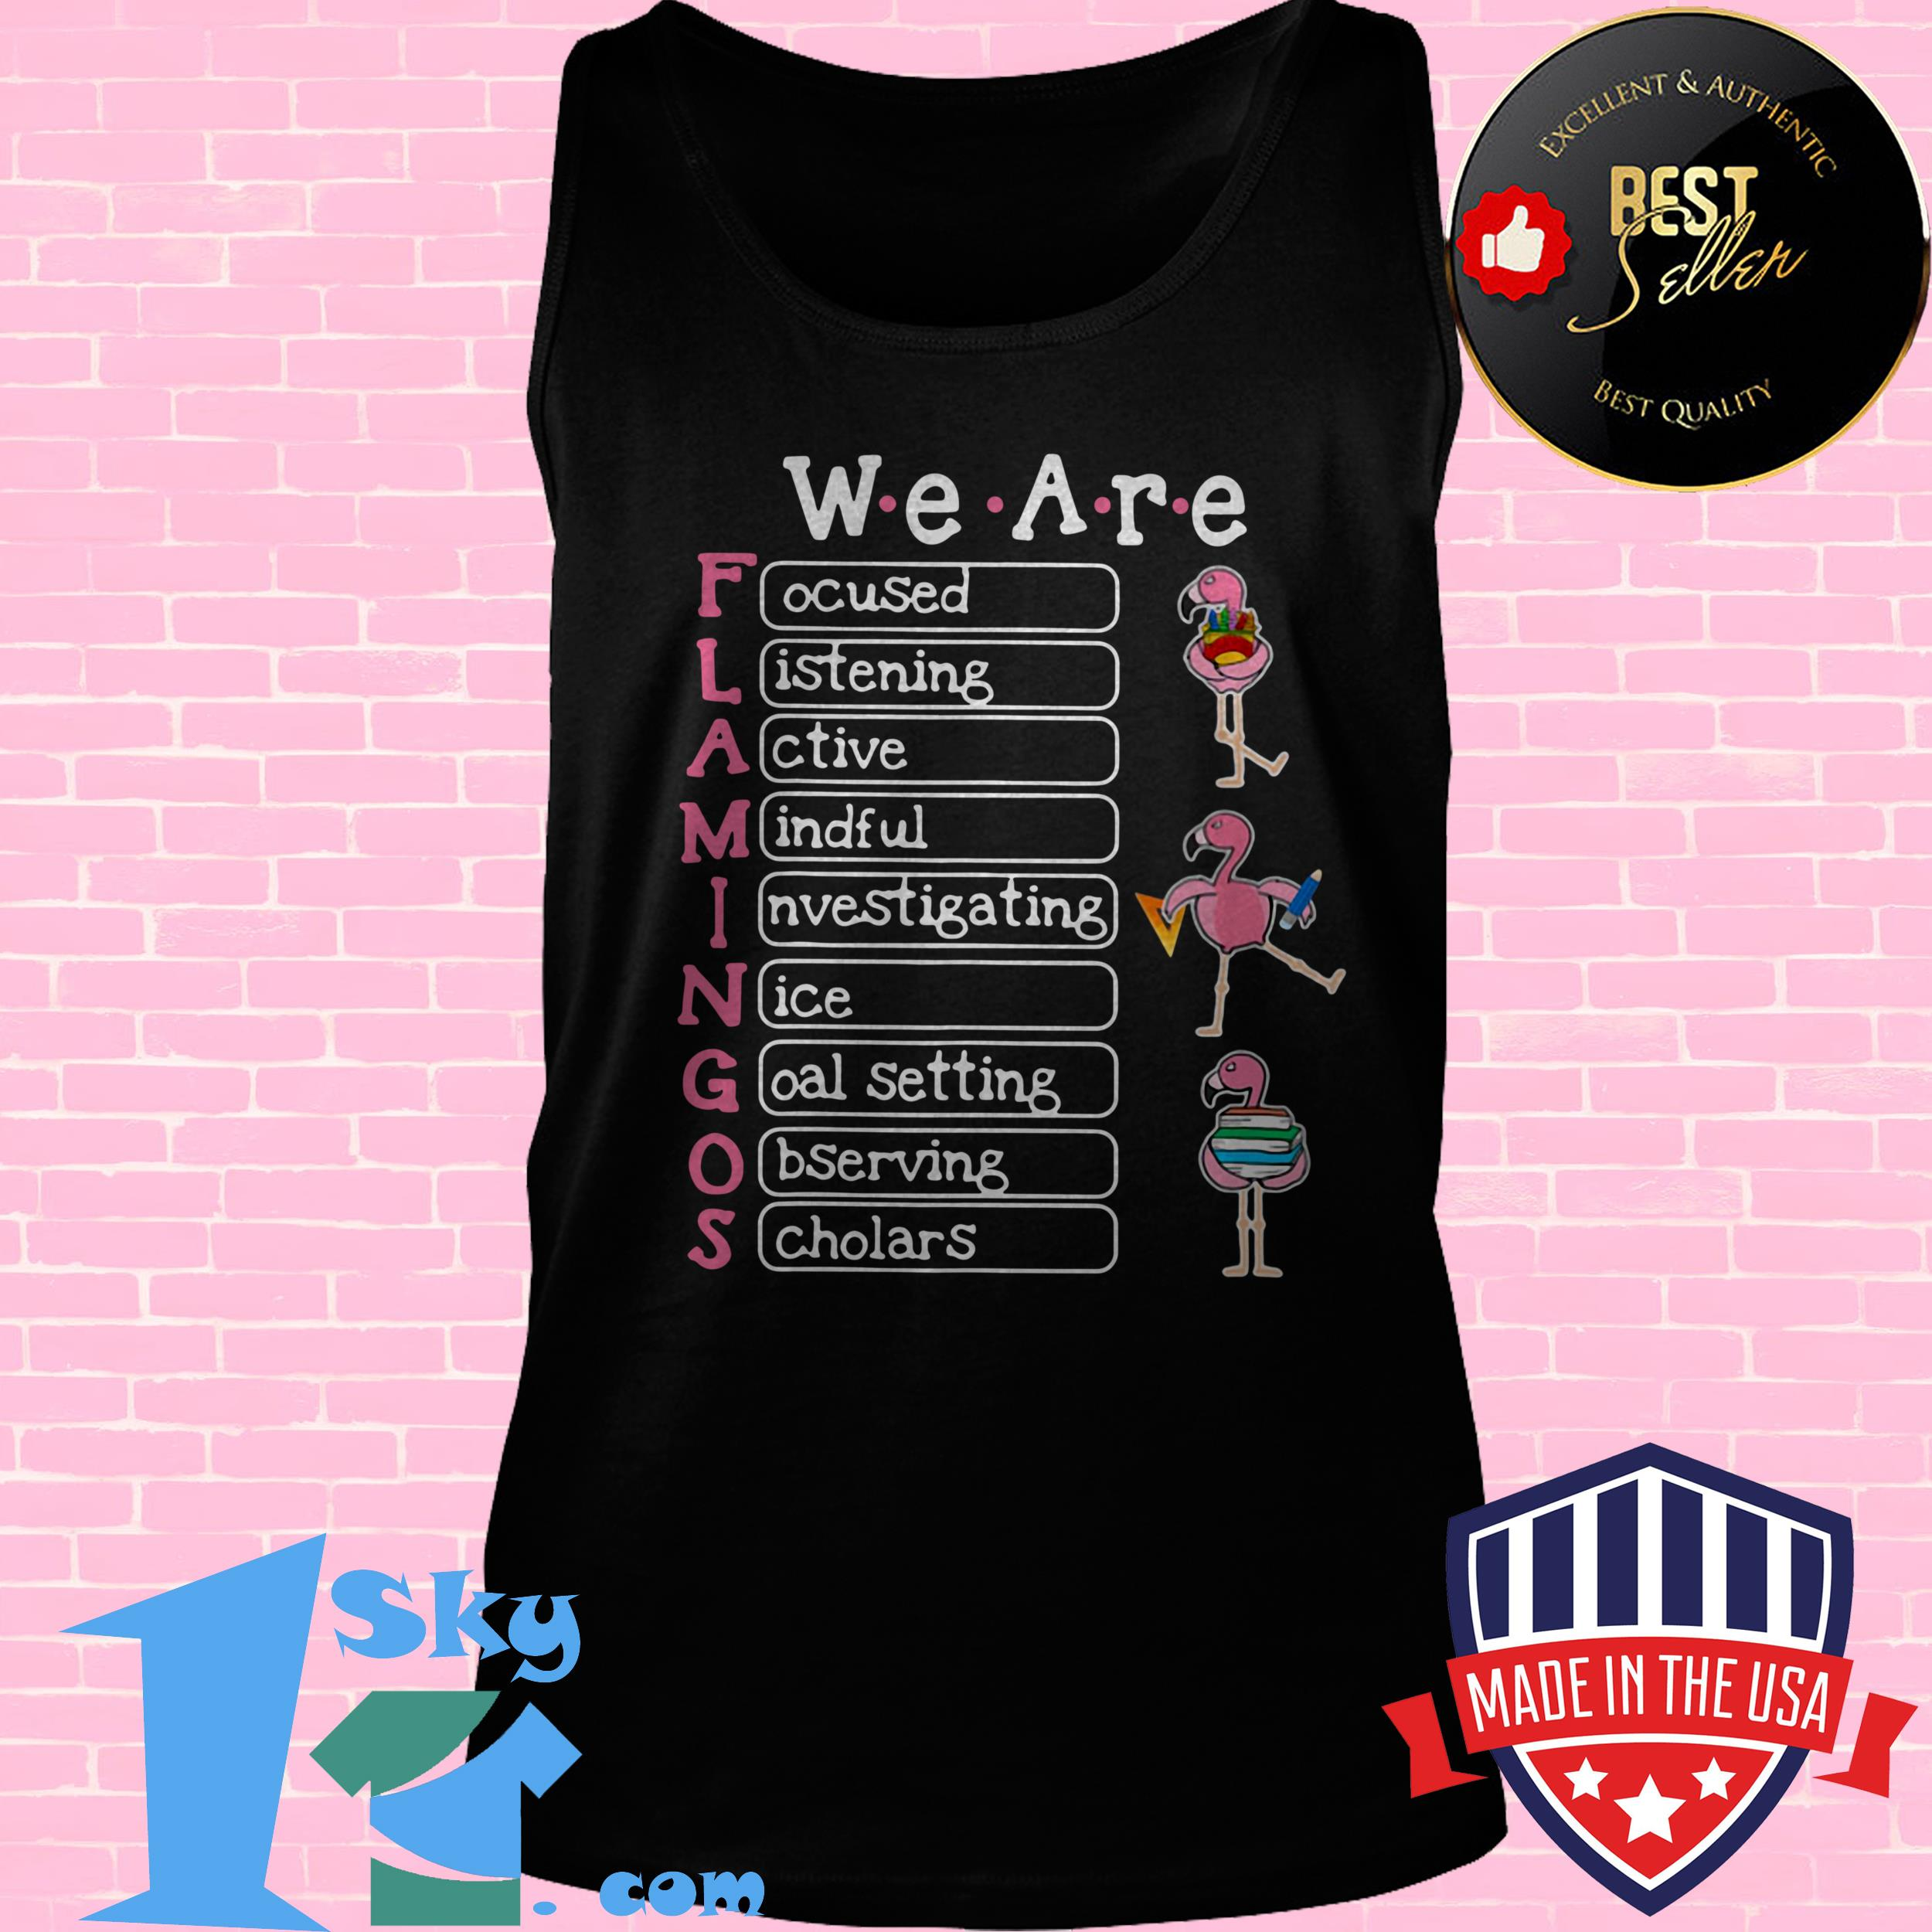 in this classroom we are flamingos focused listening active mindful poster tank top - In This Classroom We are Flamingos Focused Listening Active Mindful Poster shirt